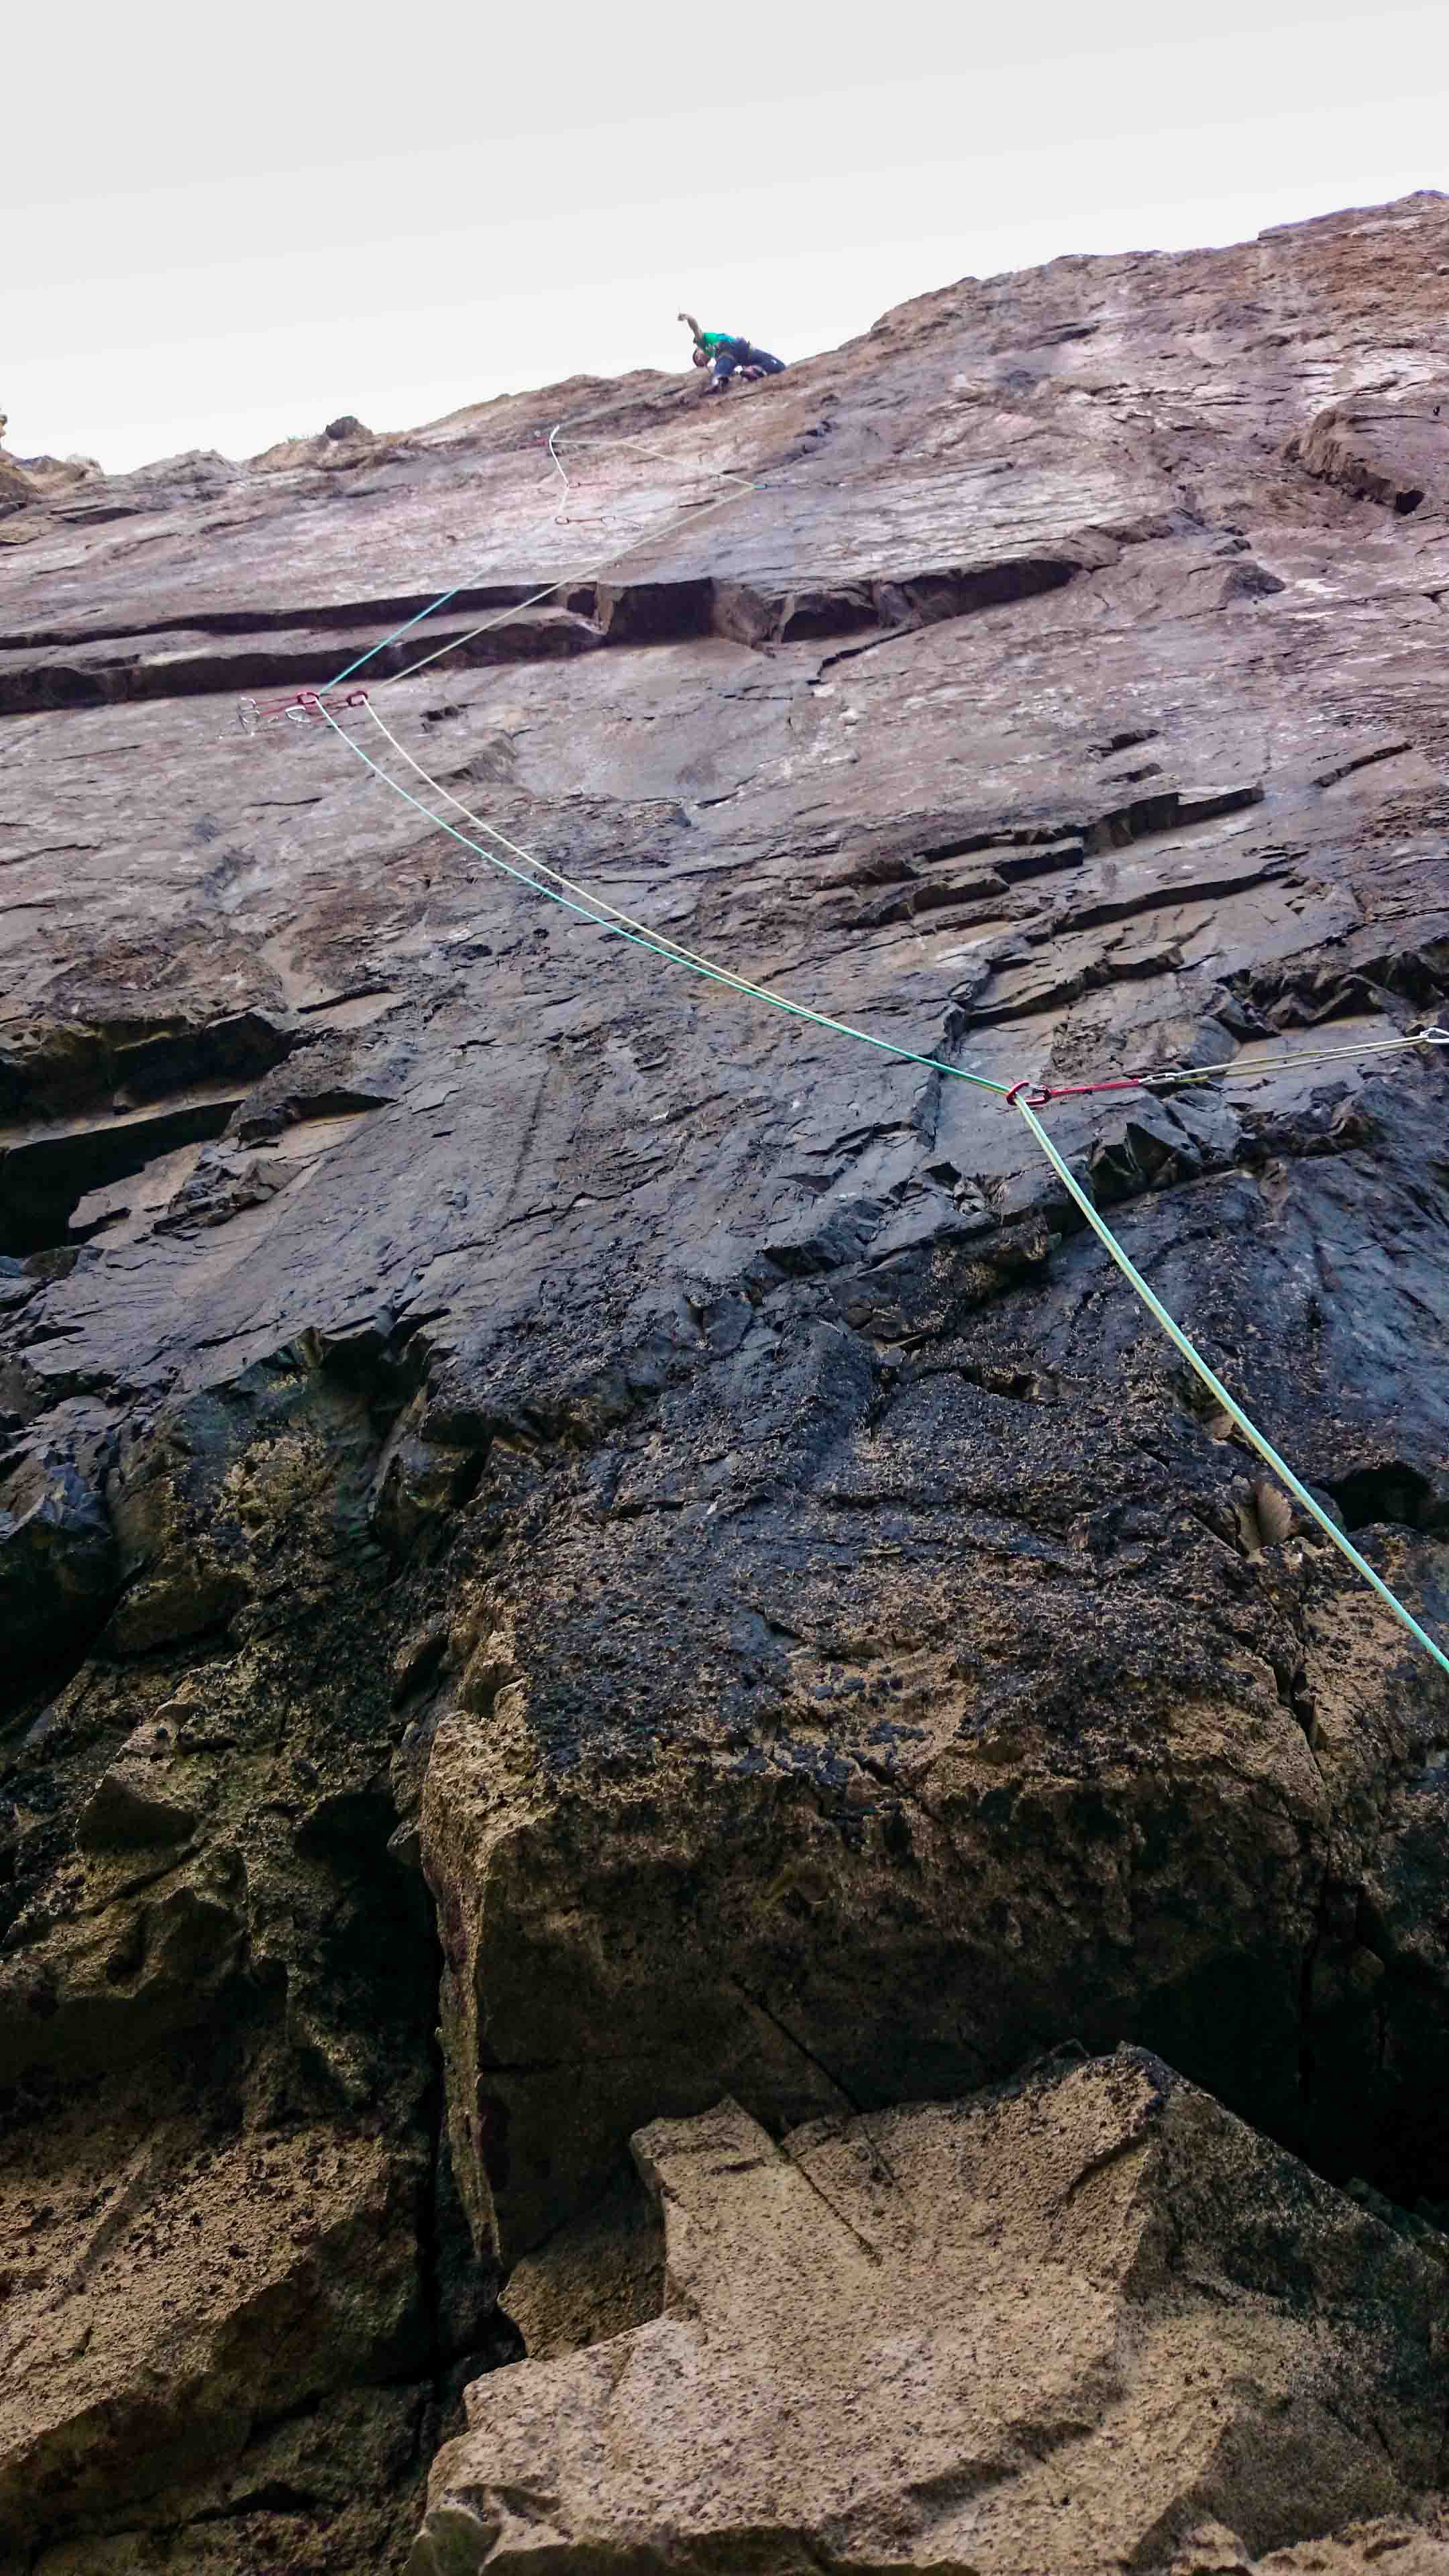 I sneaked a picture while belaying James, once he had stuck the crux